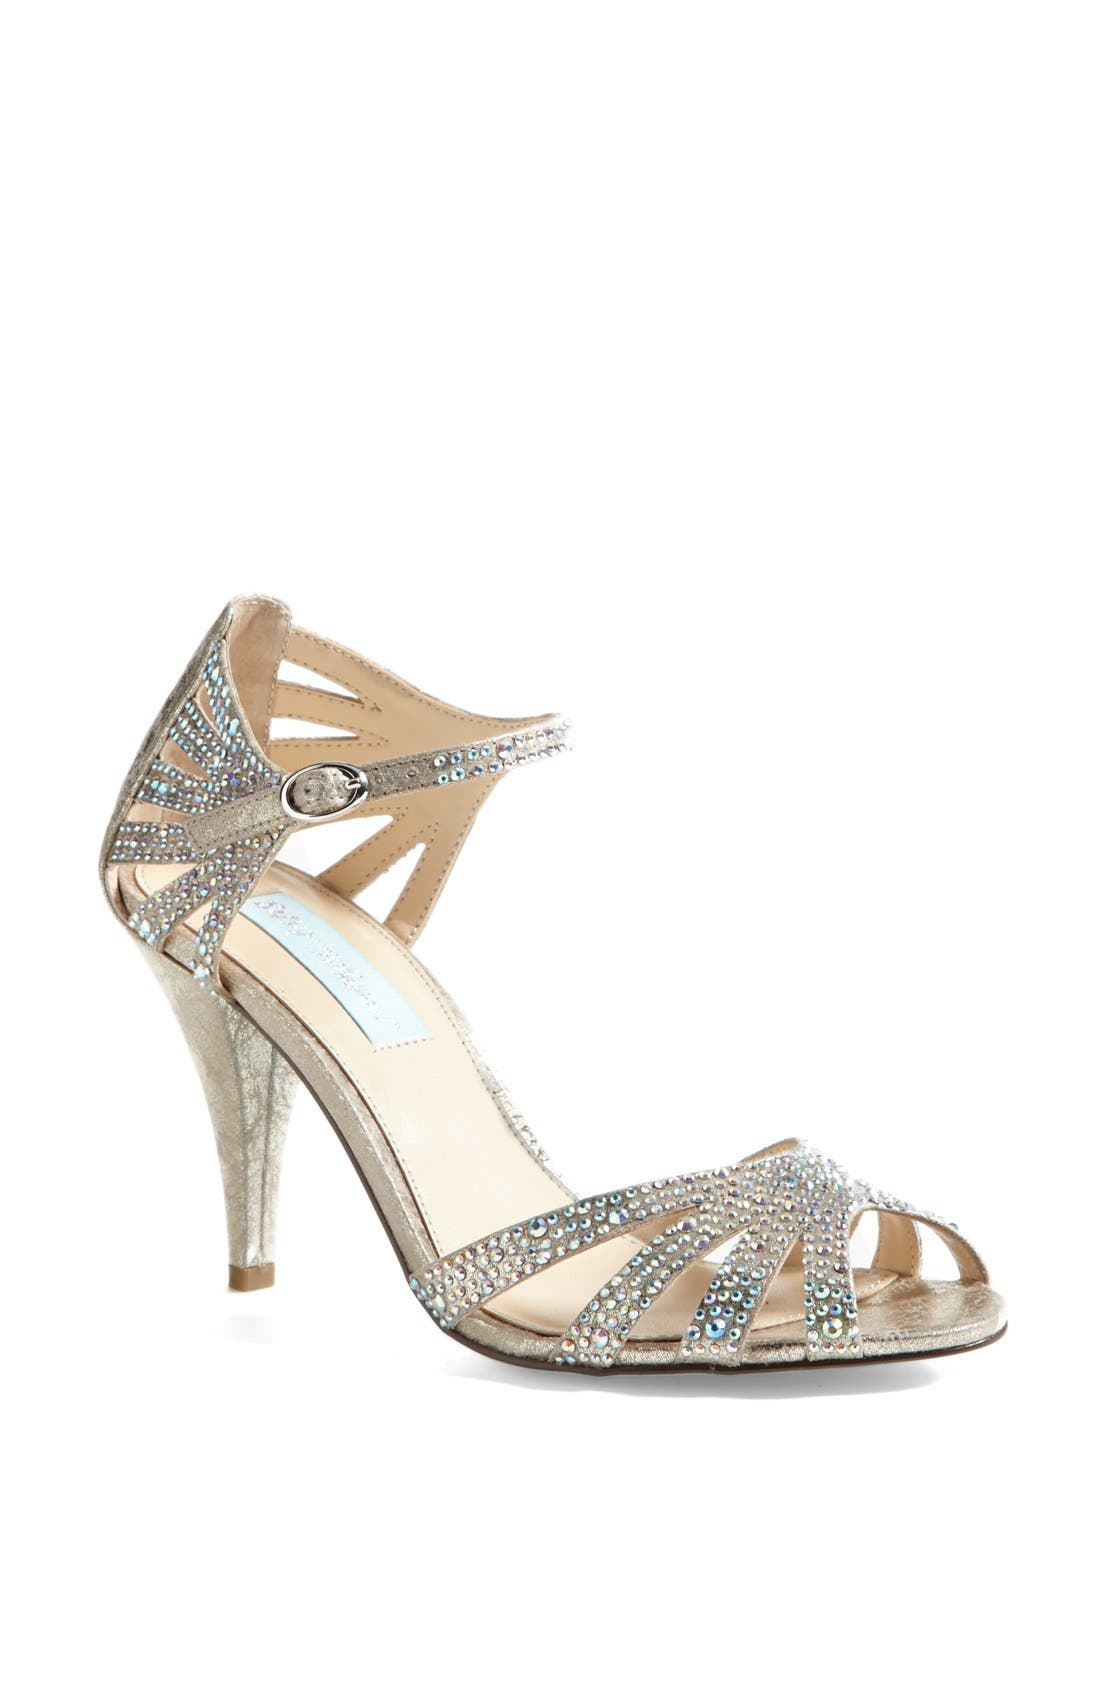 Main Image - Betsey Johnson 'Sweet' Sandal